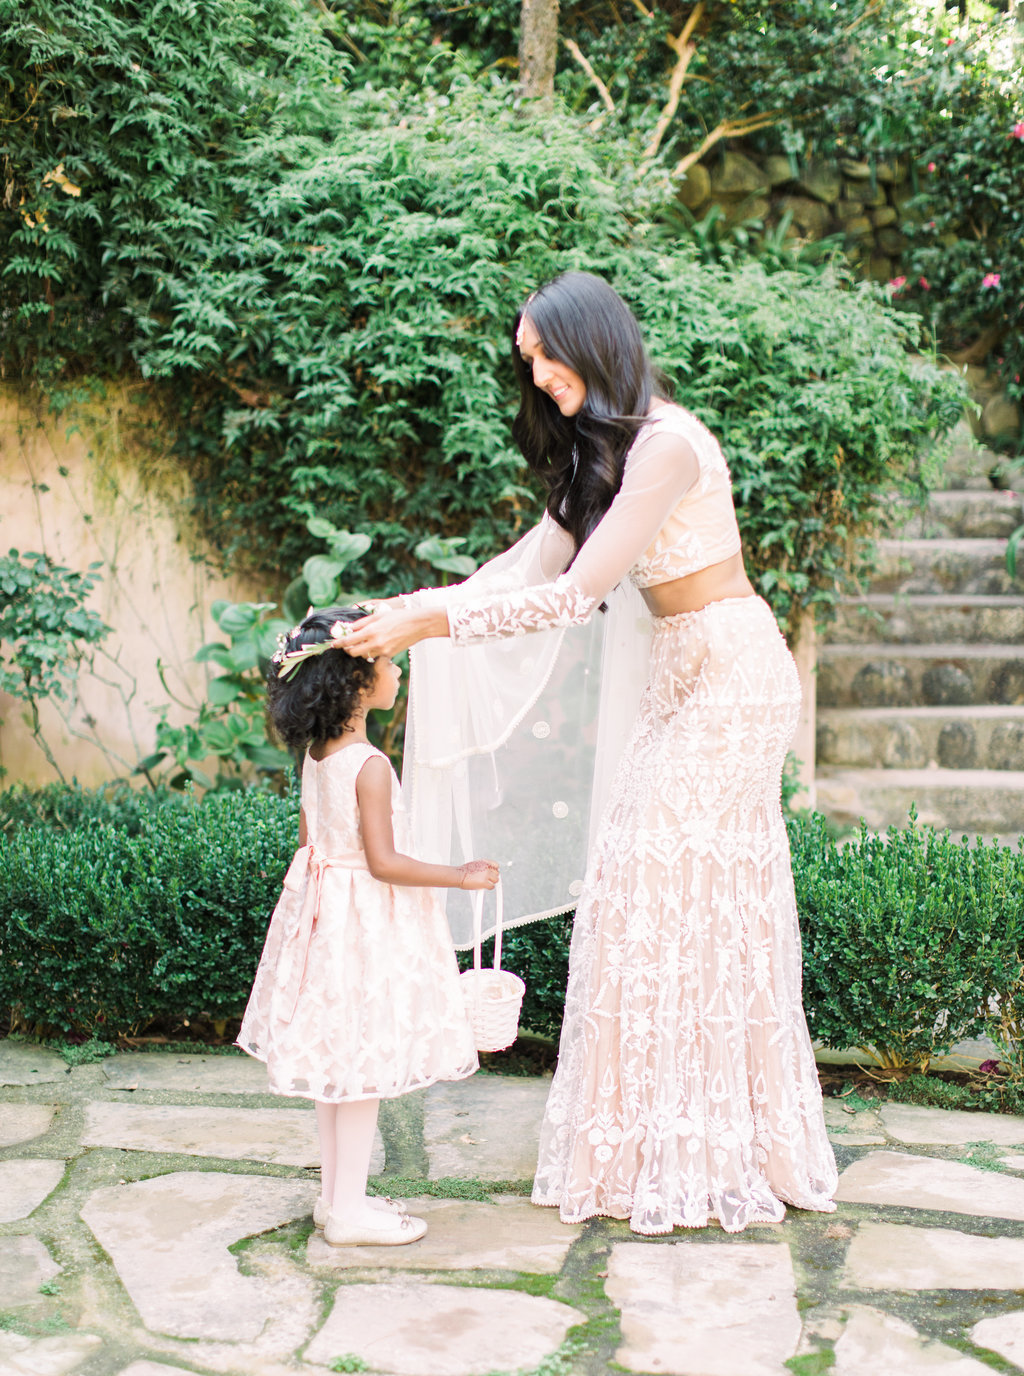 Bride in traditional white wedding saree and flower girl at Butterly Lane Estate wedding